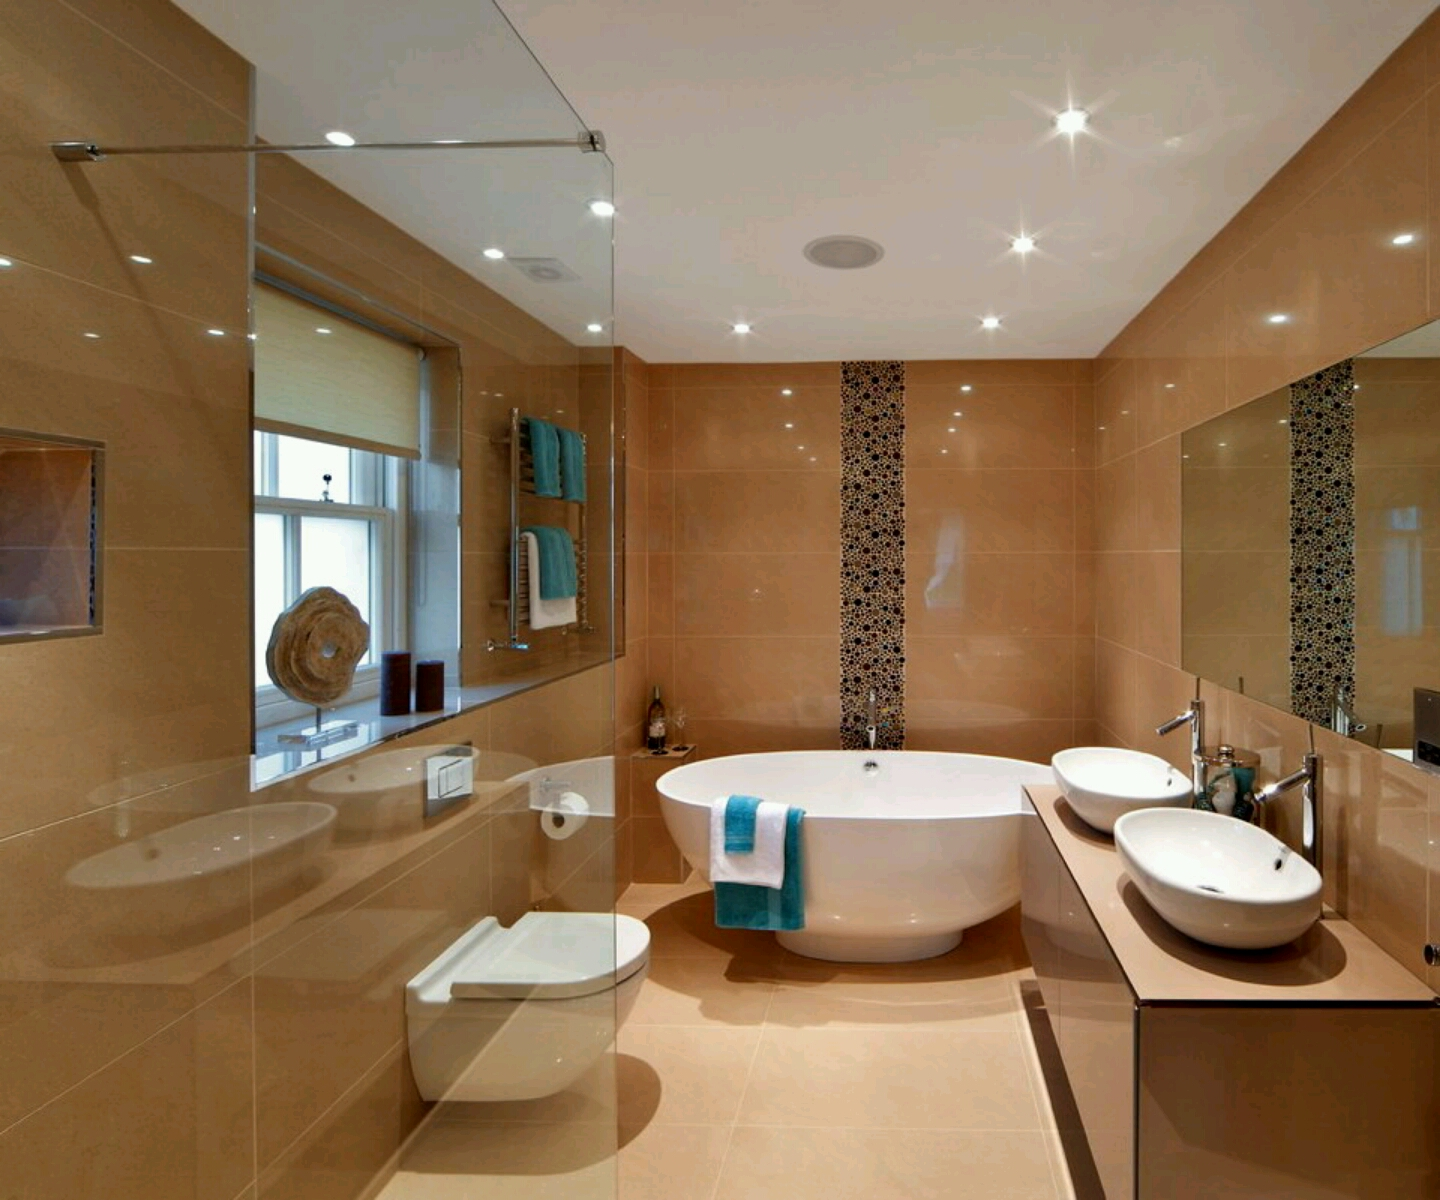 New home designs latest luxury modern bathrooms designs for New home bathroom design